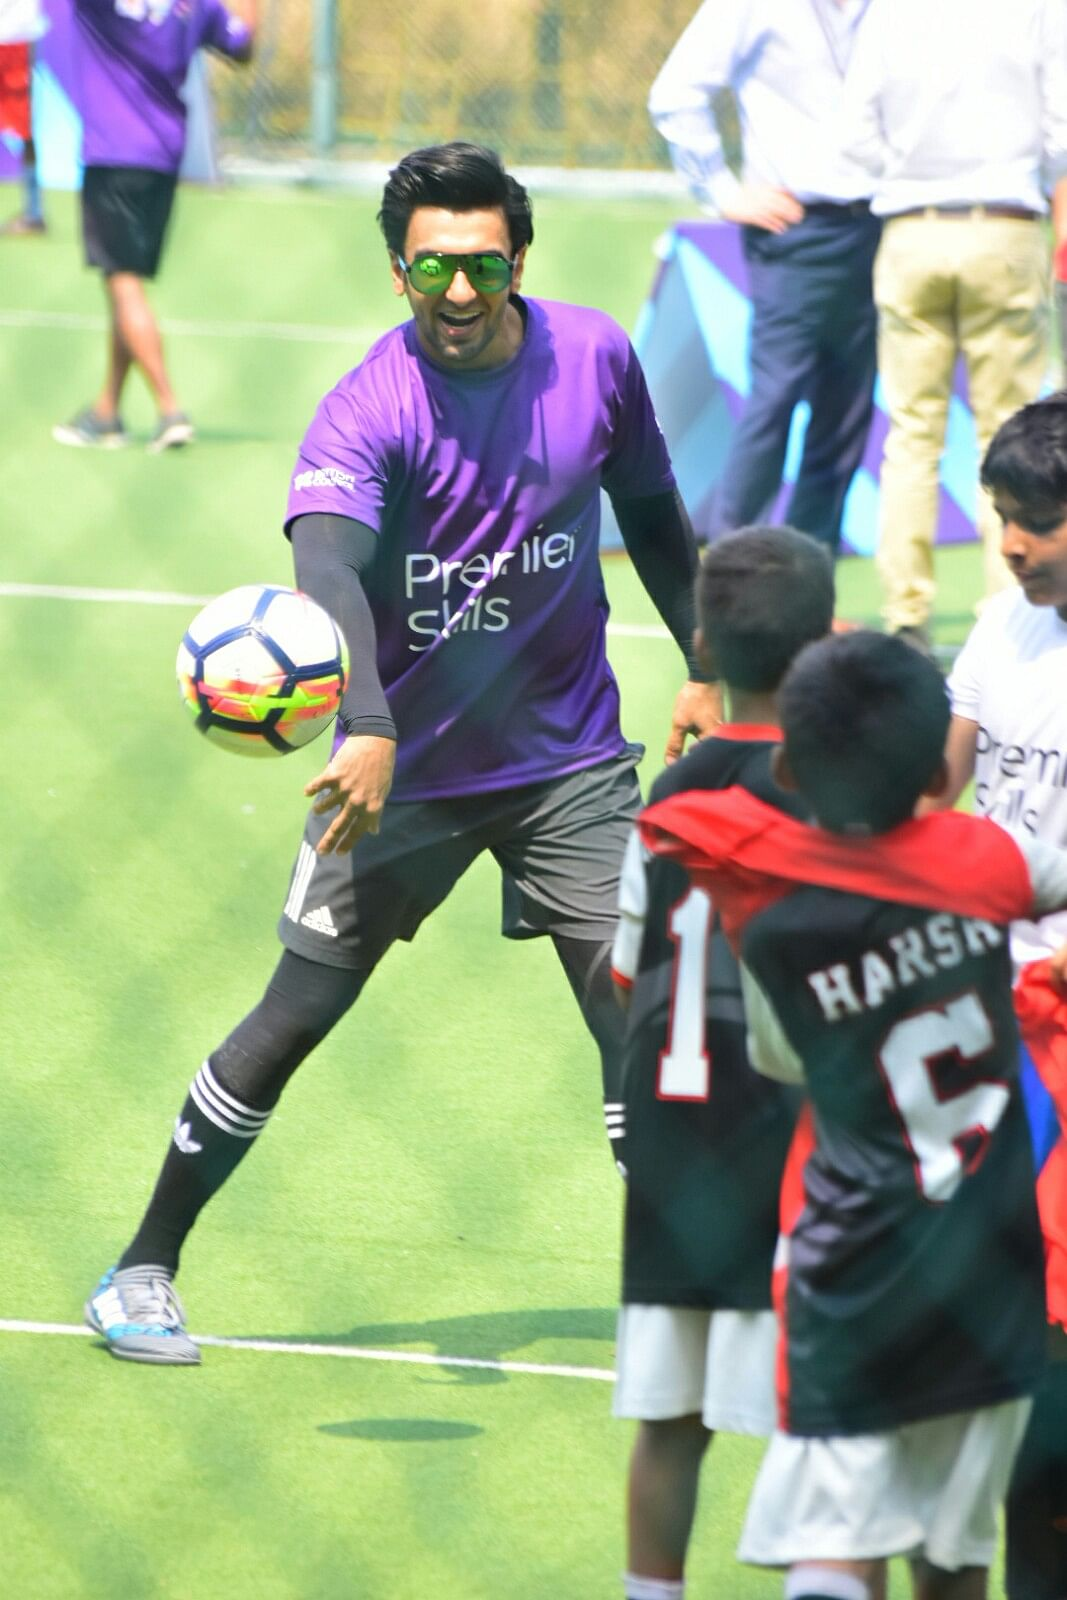 Ranveer Singh plays football on Friday.